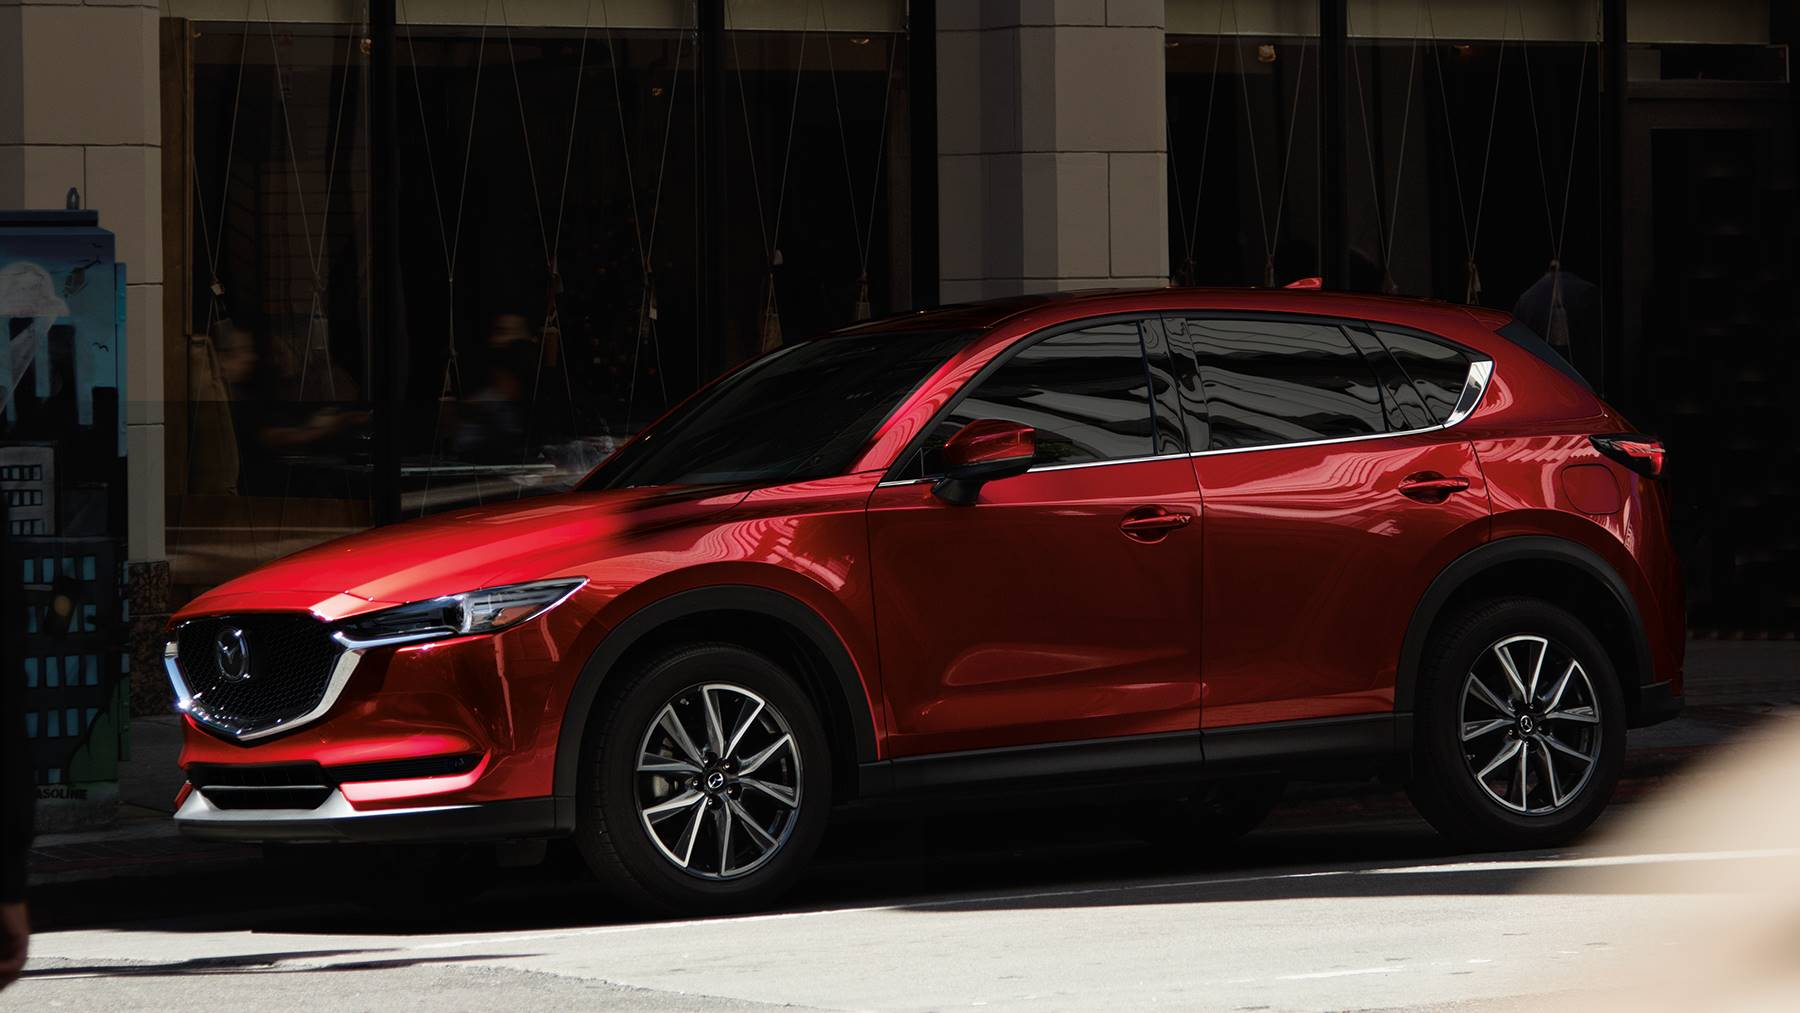 2018 mazda cx 5 leasing in elk grove ca mazda of elk grove. Black Bedroom Furniture Sets. Home Design Ideas